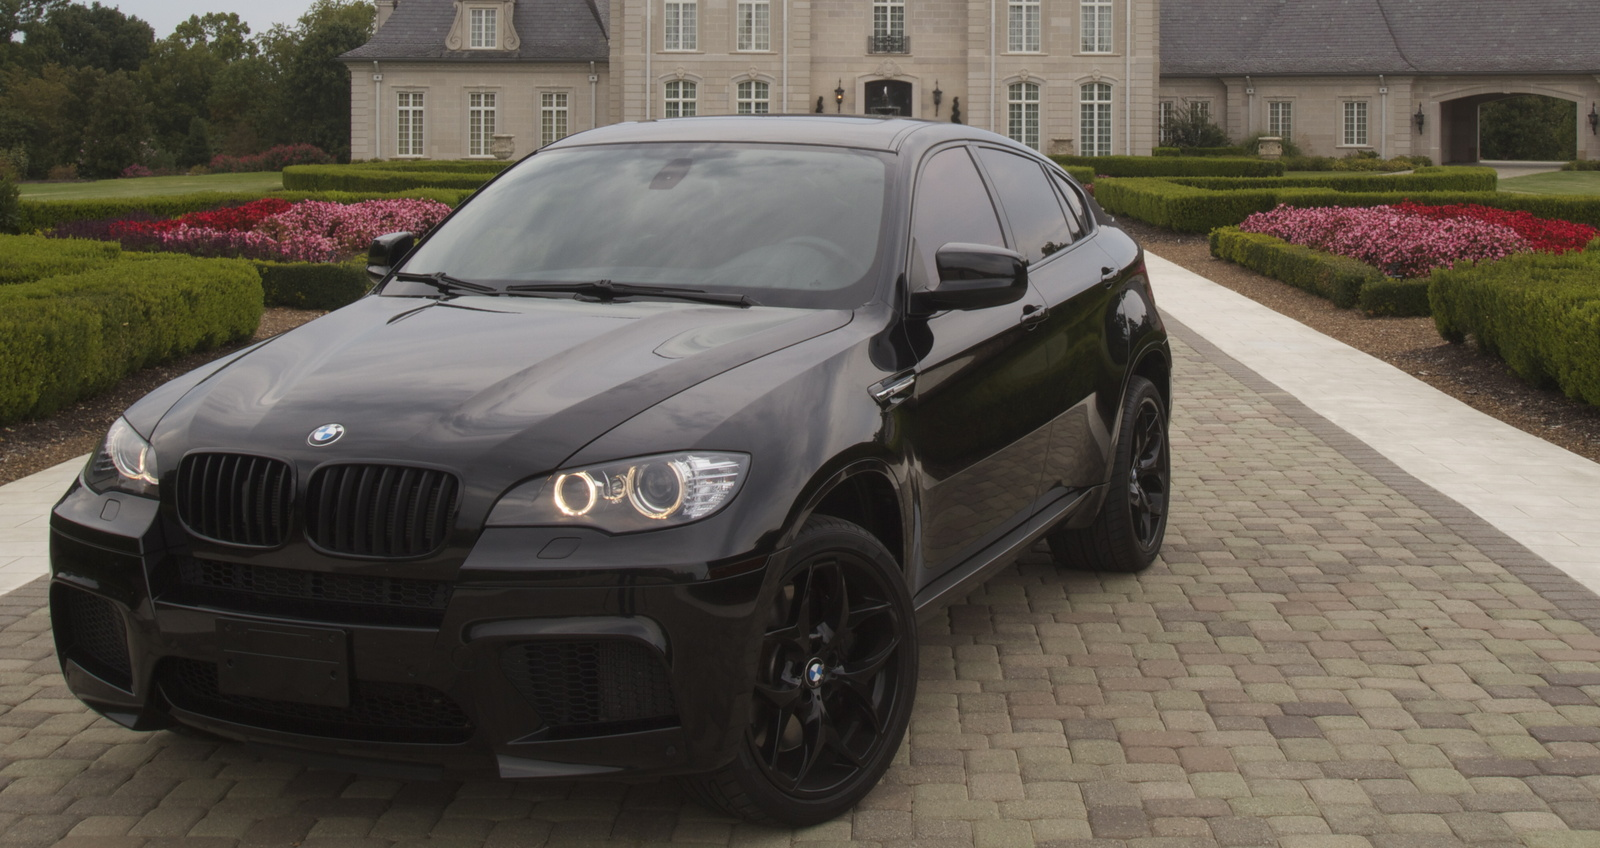 Picture of 2011 BMW X6 M